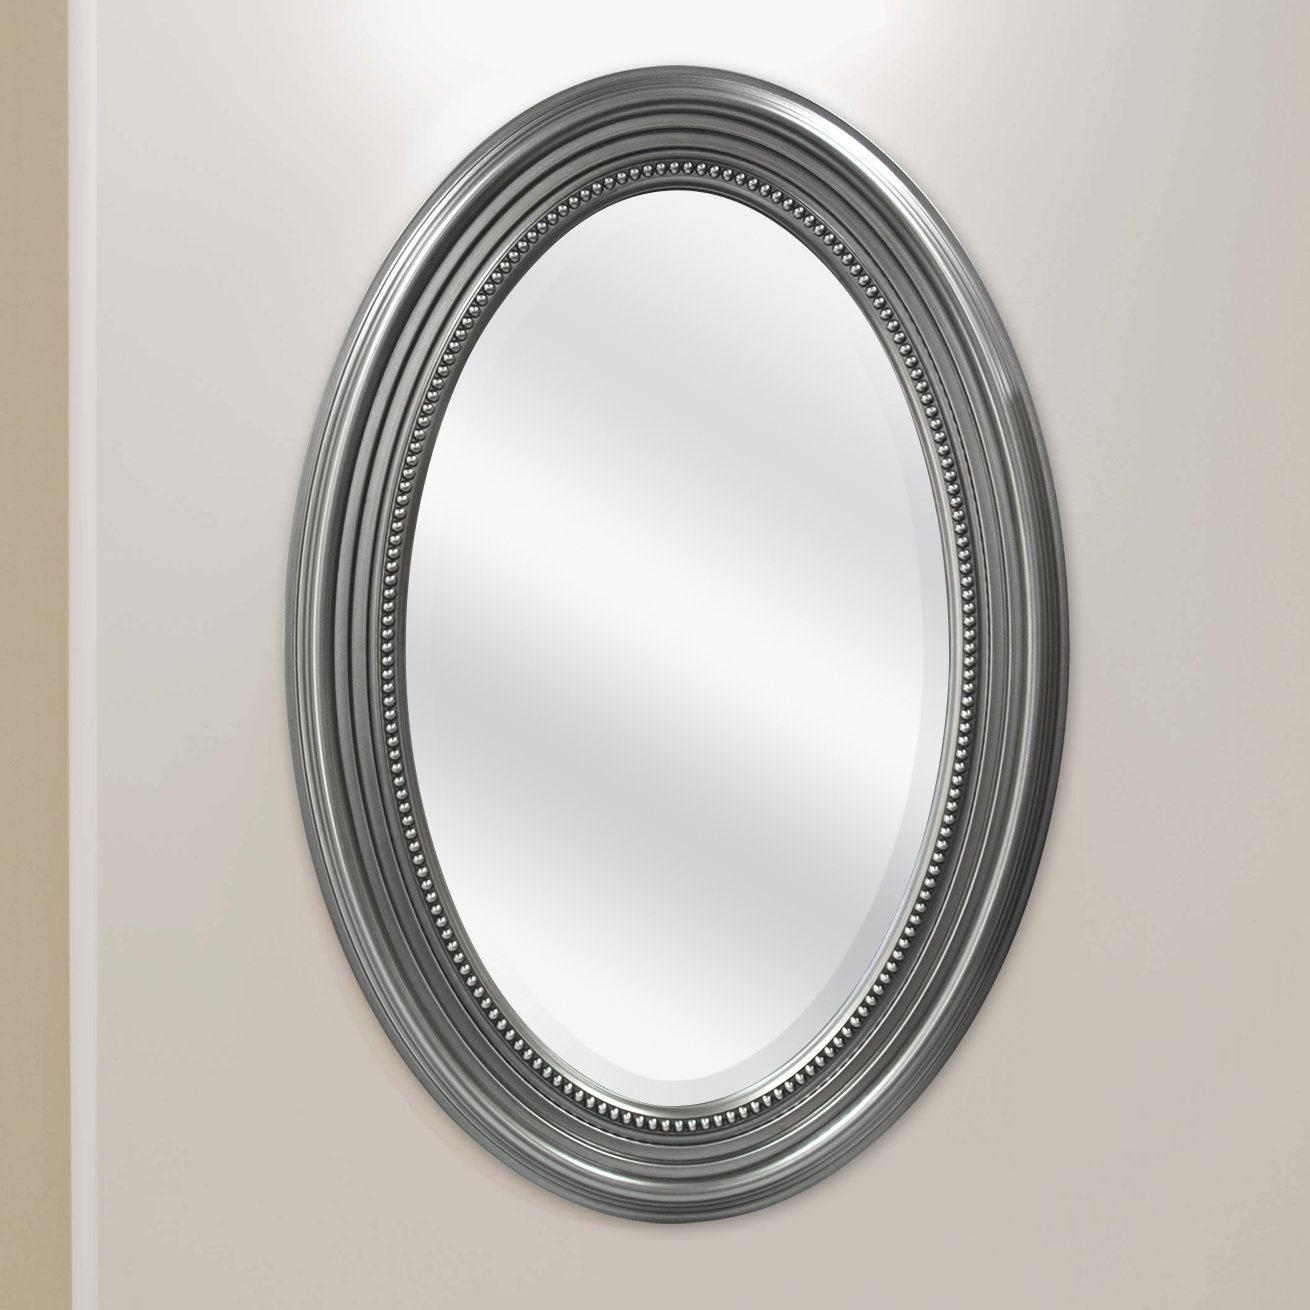 Mcsindustries Beaded Accent Mirror & Reviews | Wayfair With Regard To Beaded Accent Wall Mirrors (View 14 of 20)